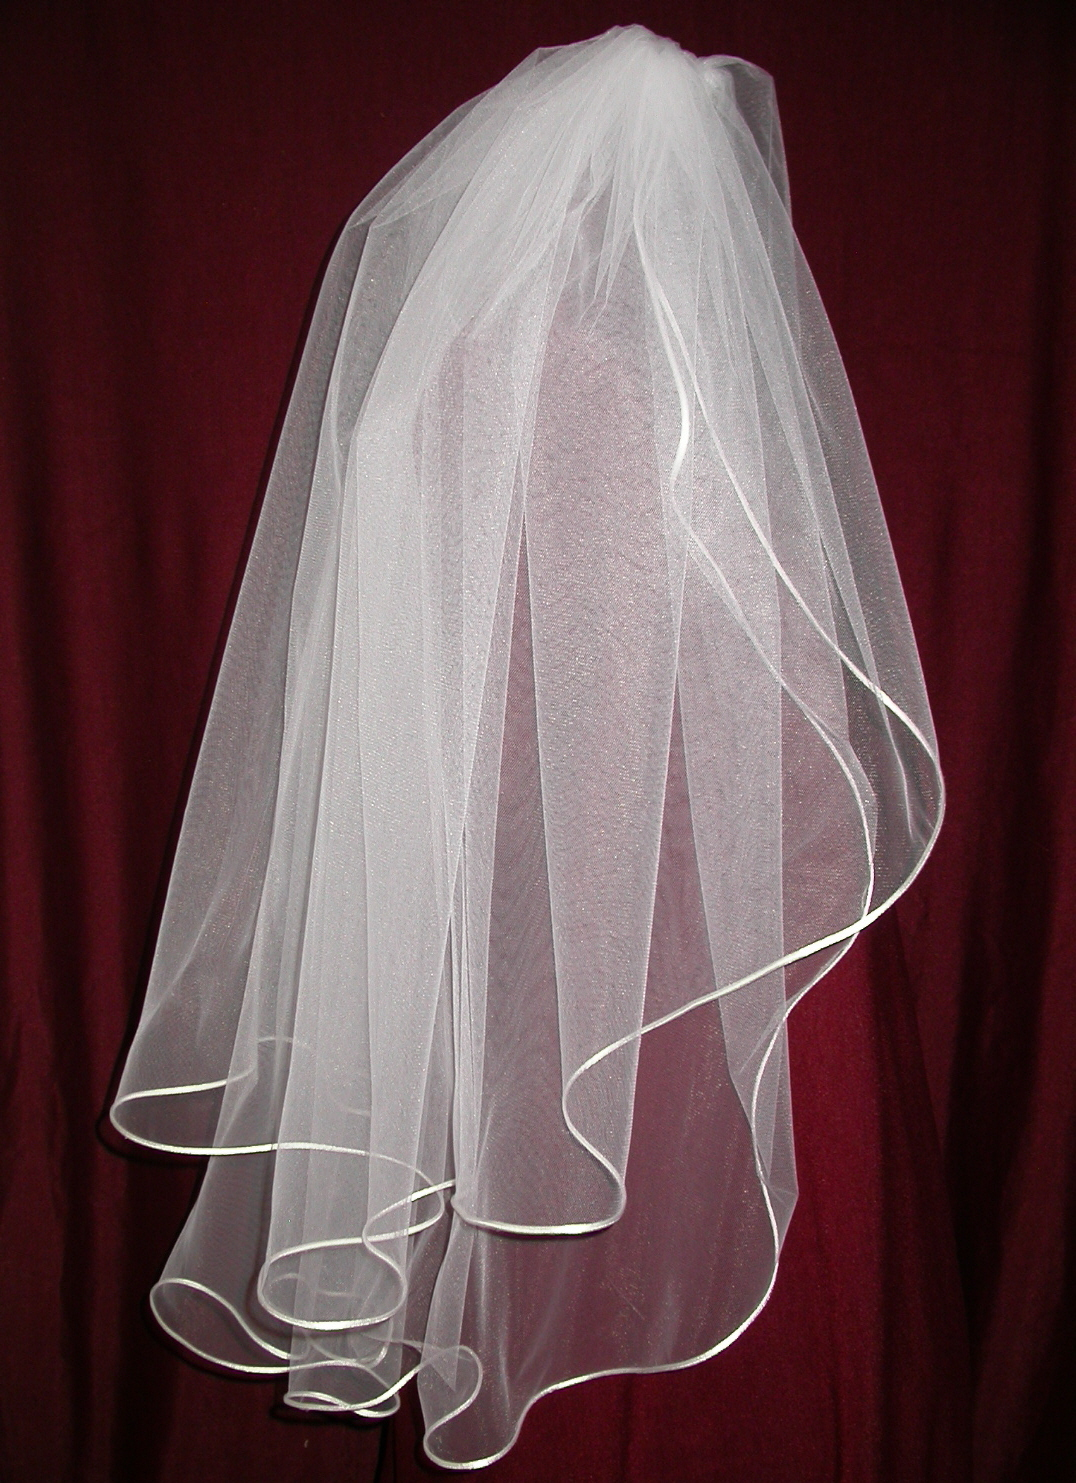 Veils, Fashion, white, ivory, Bride, Veil, Custom, Satin, Headpiece, Diamond, Cord, Tier, Lengths, Candlelight, Two, Damselfly studio, satin wedding dresses